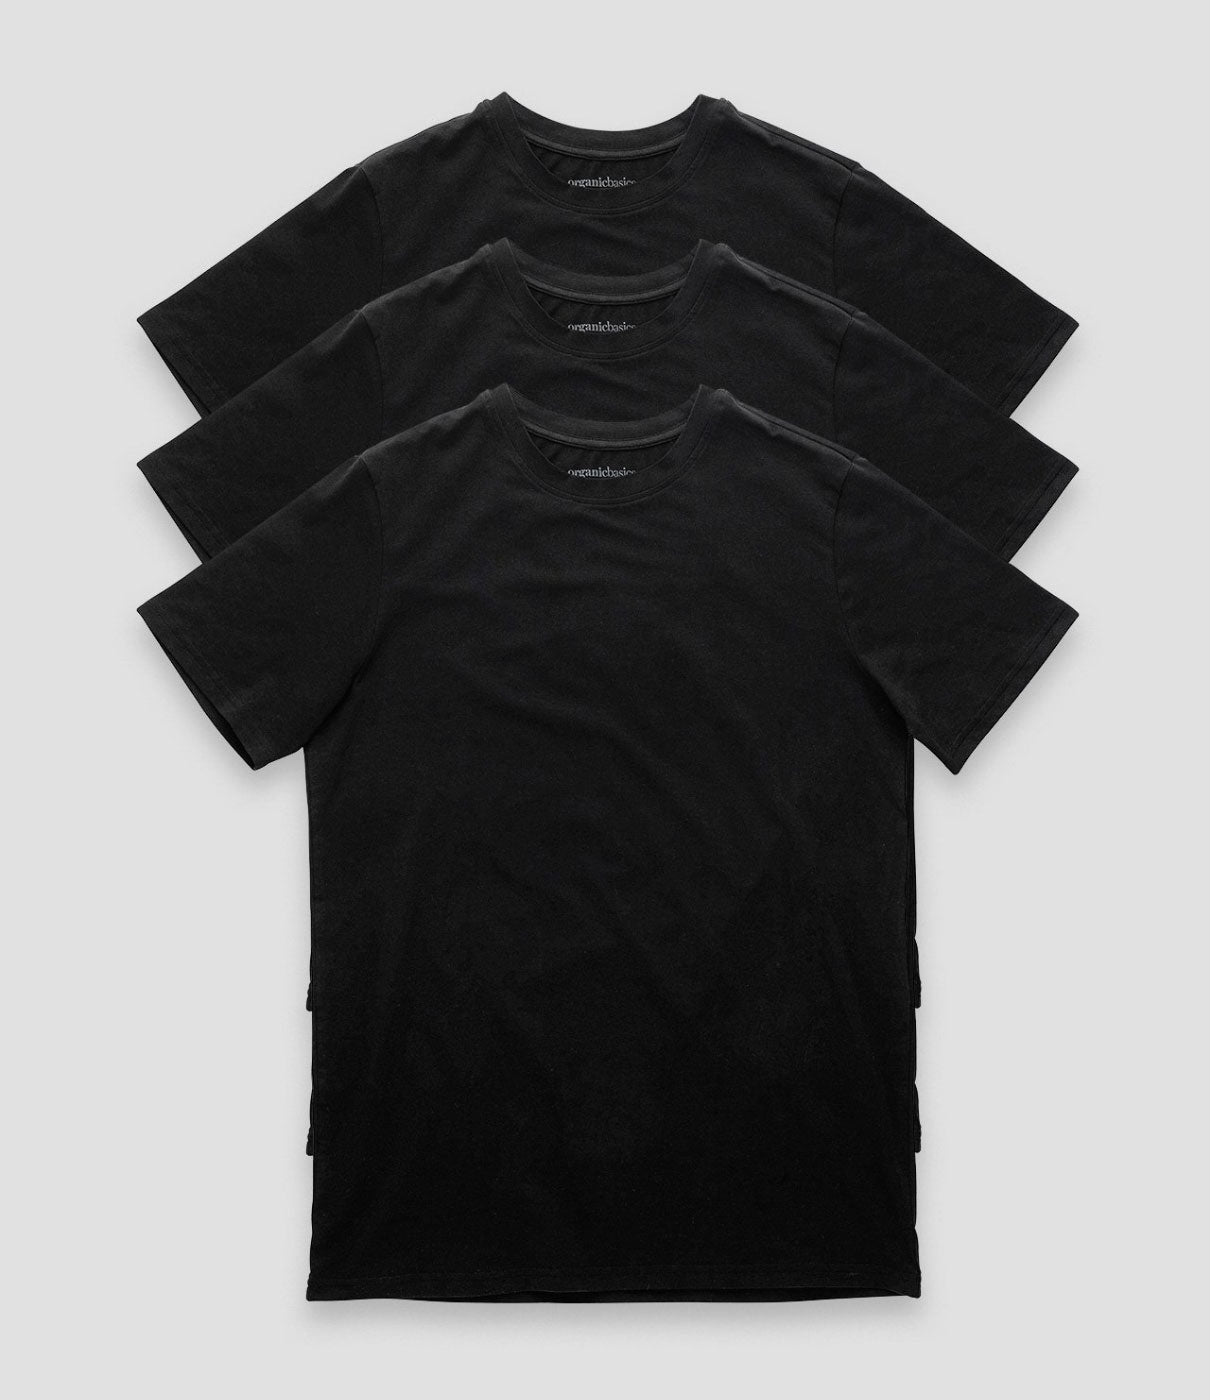 Organic Basics - Black- t-shirt tee top